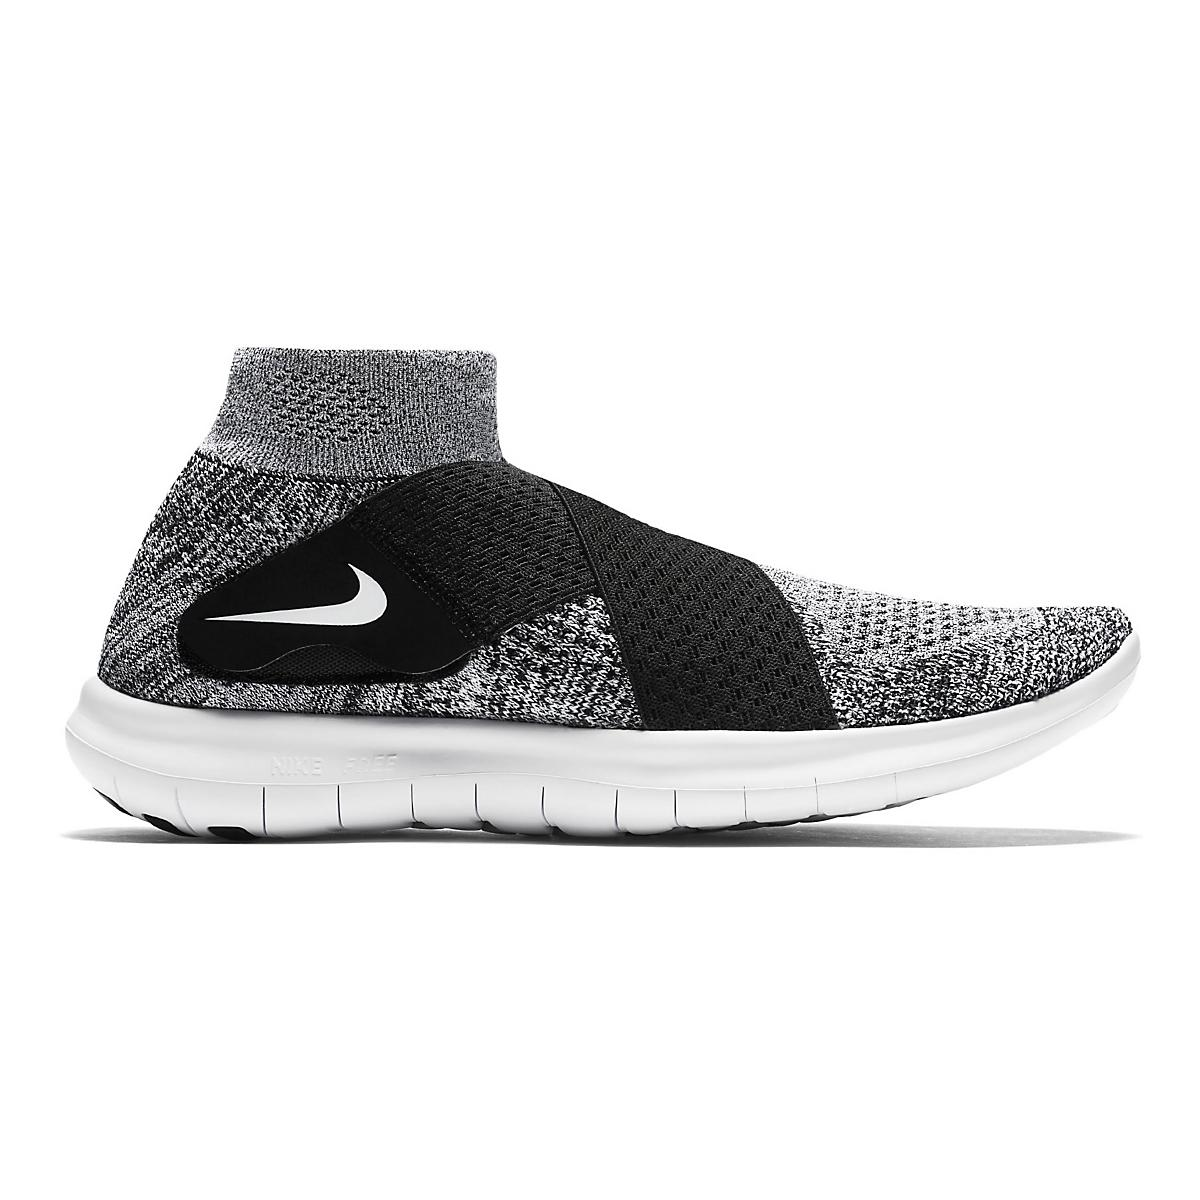 Womens Nike Free RN Motion Flyknit 2017 Running Shoe at Road Runner Sports 5b99e9f63